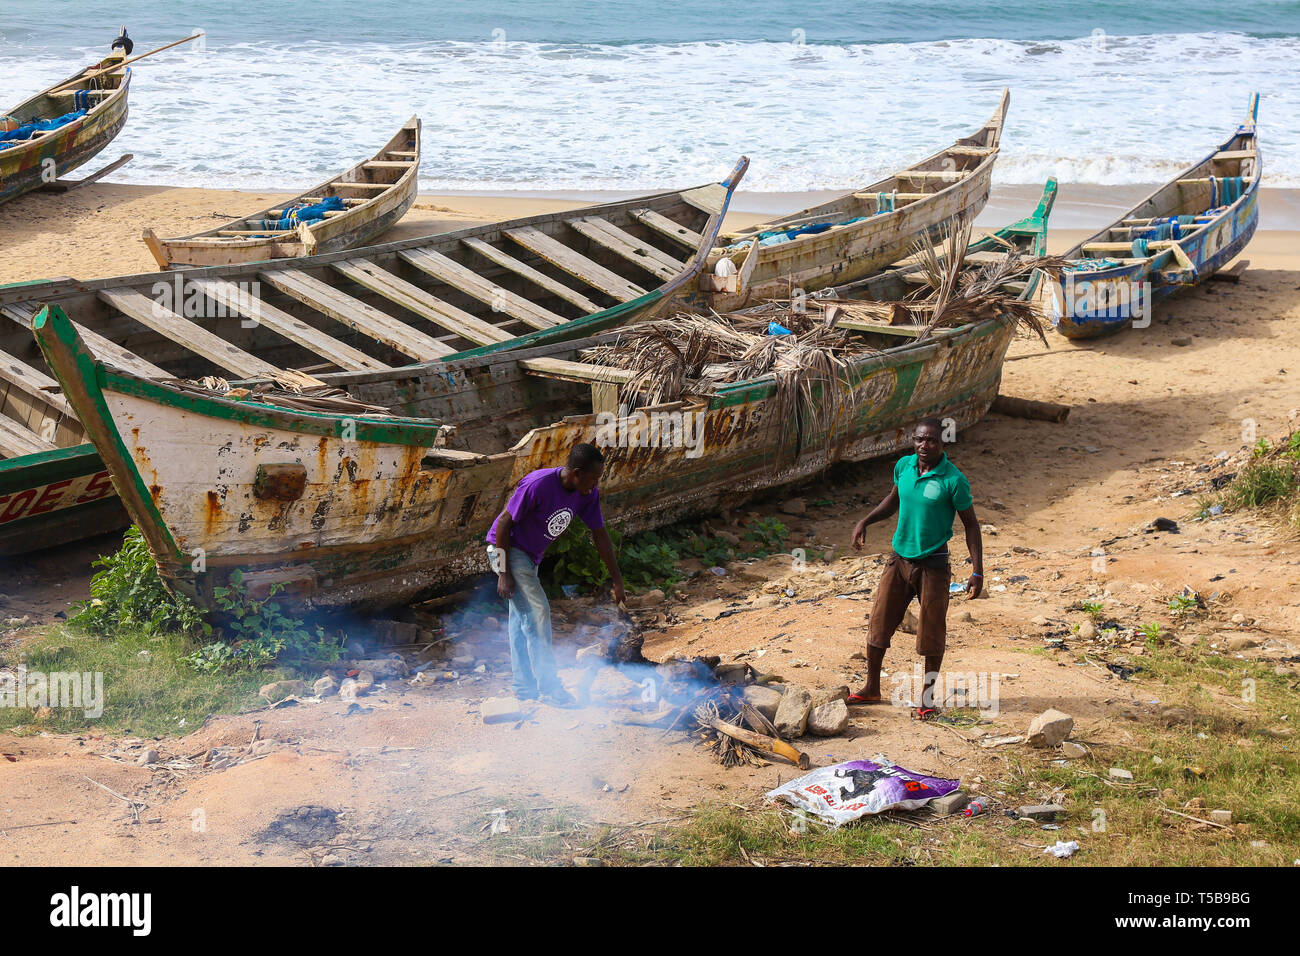 Two men cook a dog on the beach in Cape Coast, Ghana. - Stock Image